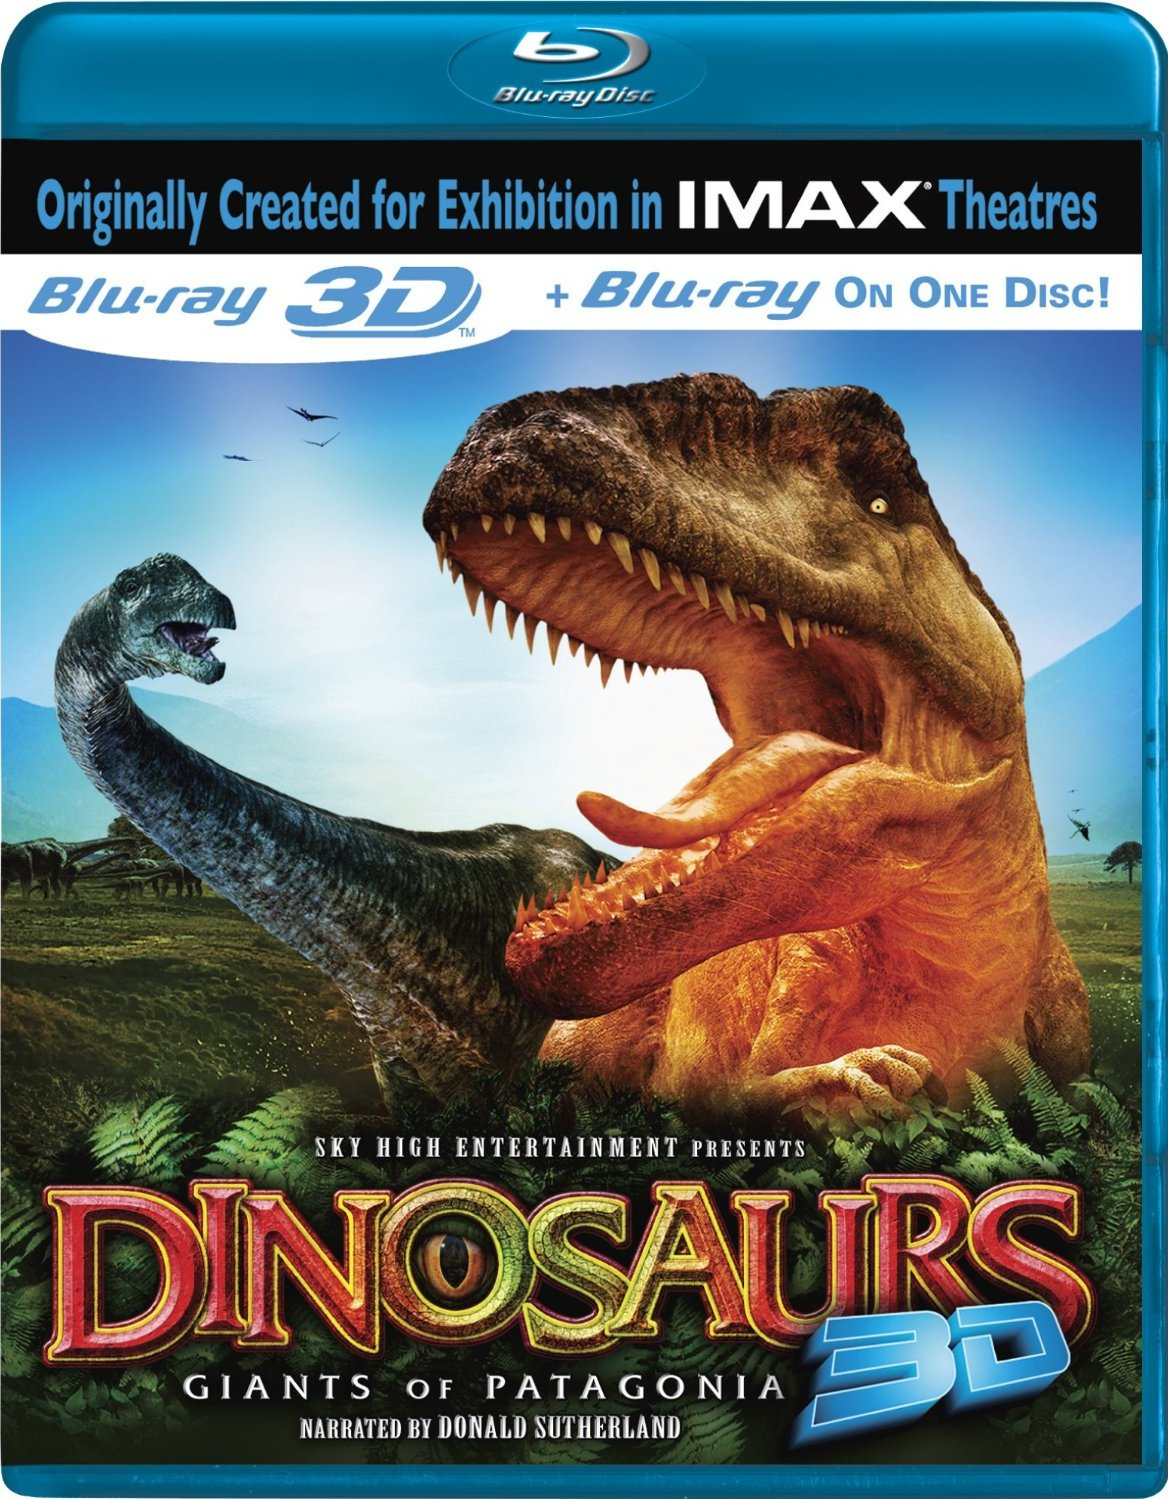 Dinosaurs Giants of Patagonia (2007)